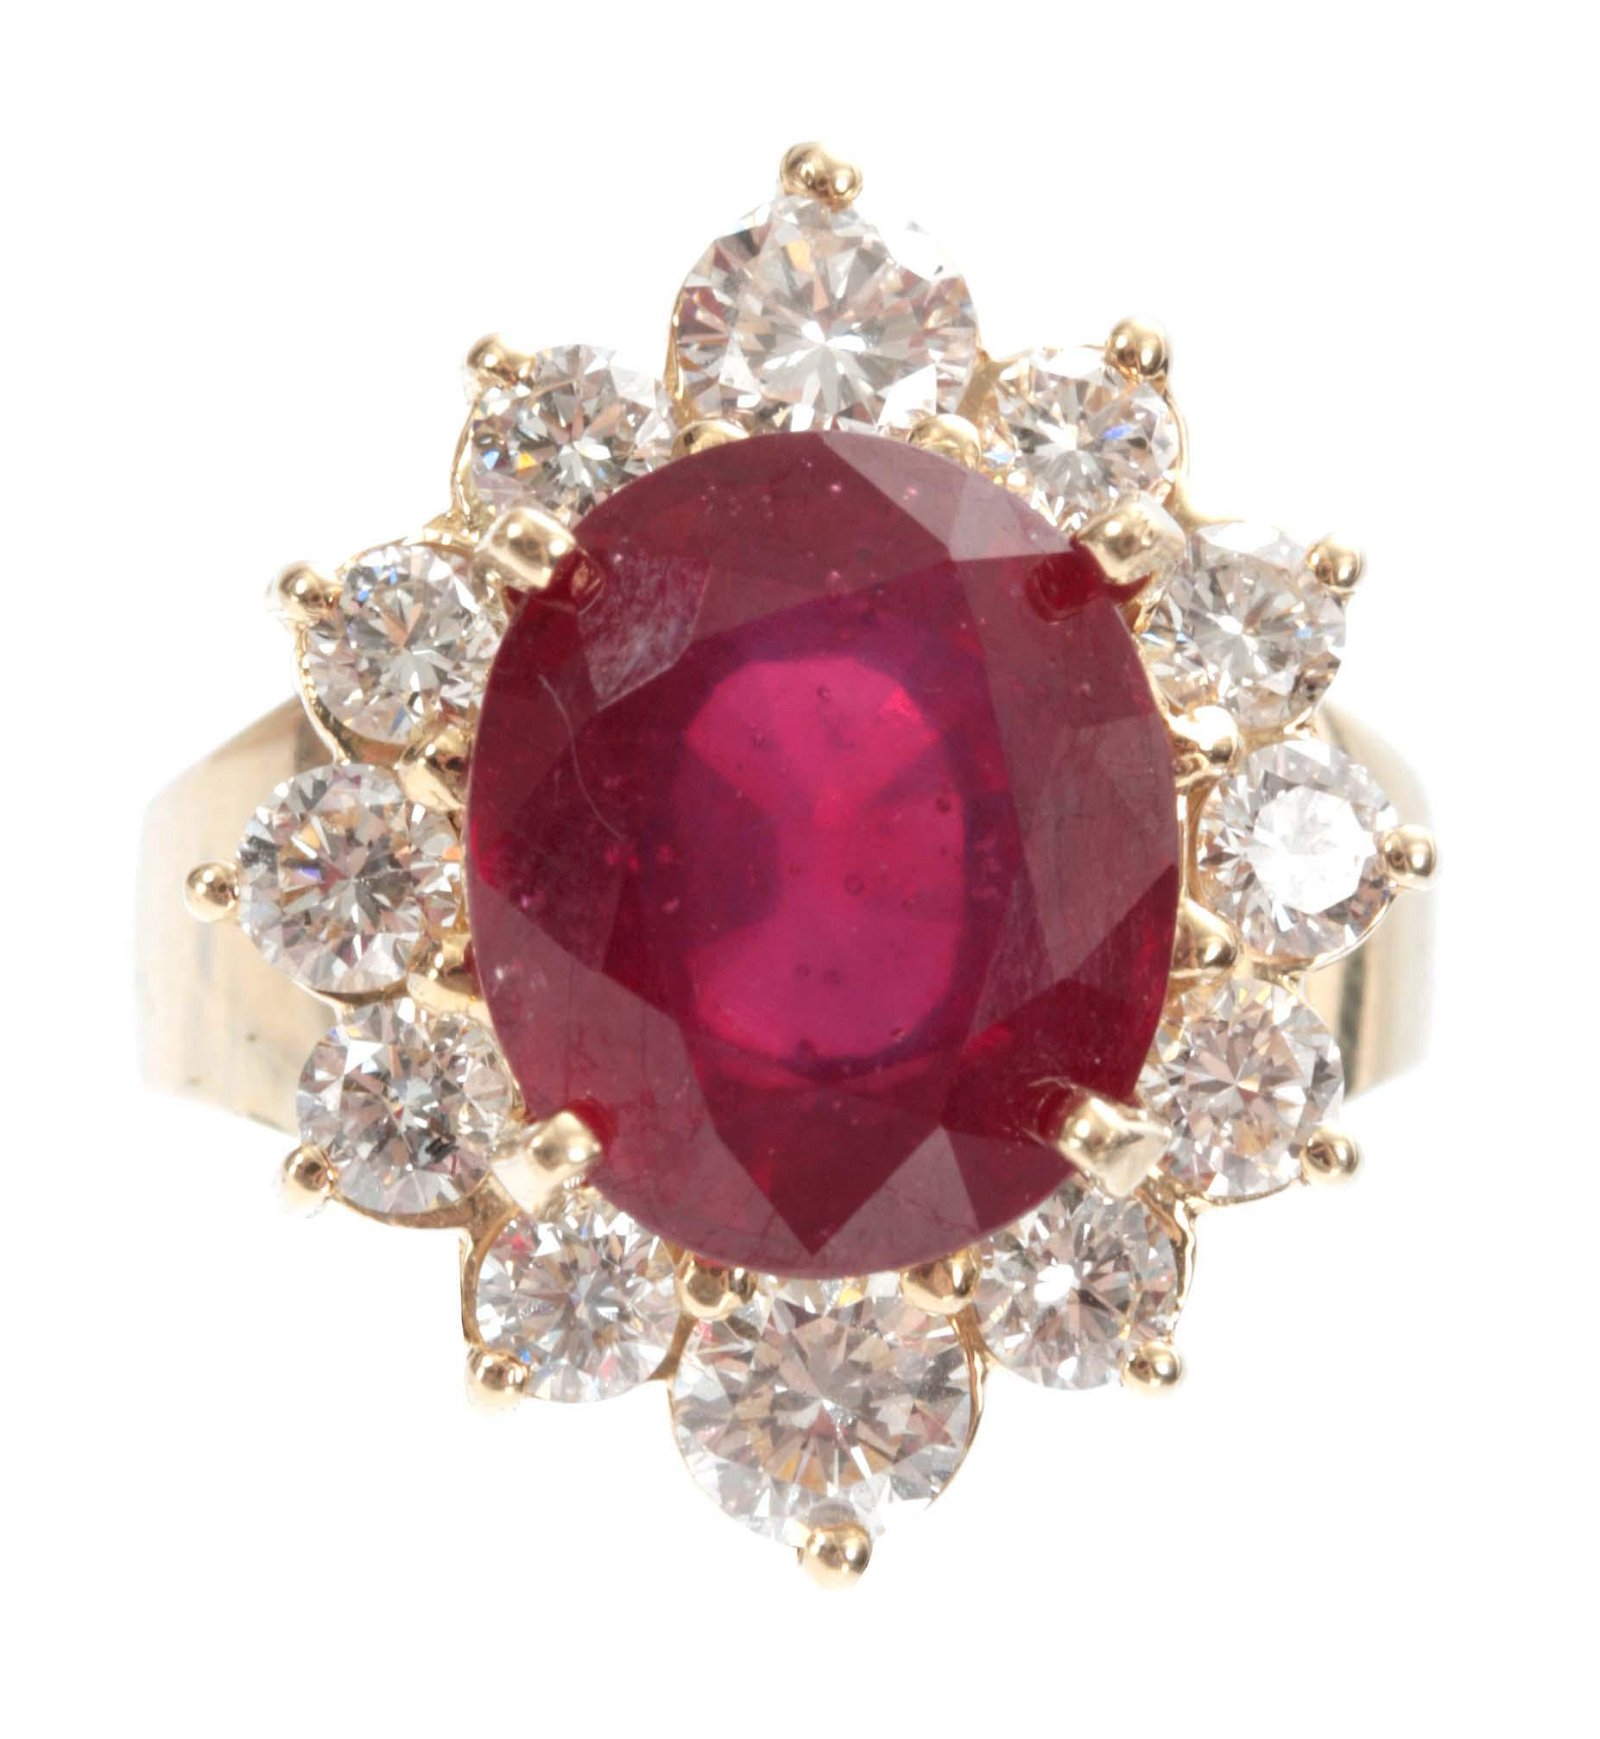 A LADIES 14ct GOLD RUBY AND DIAMOND RING having a